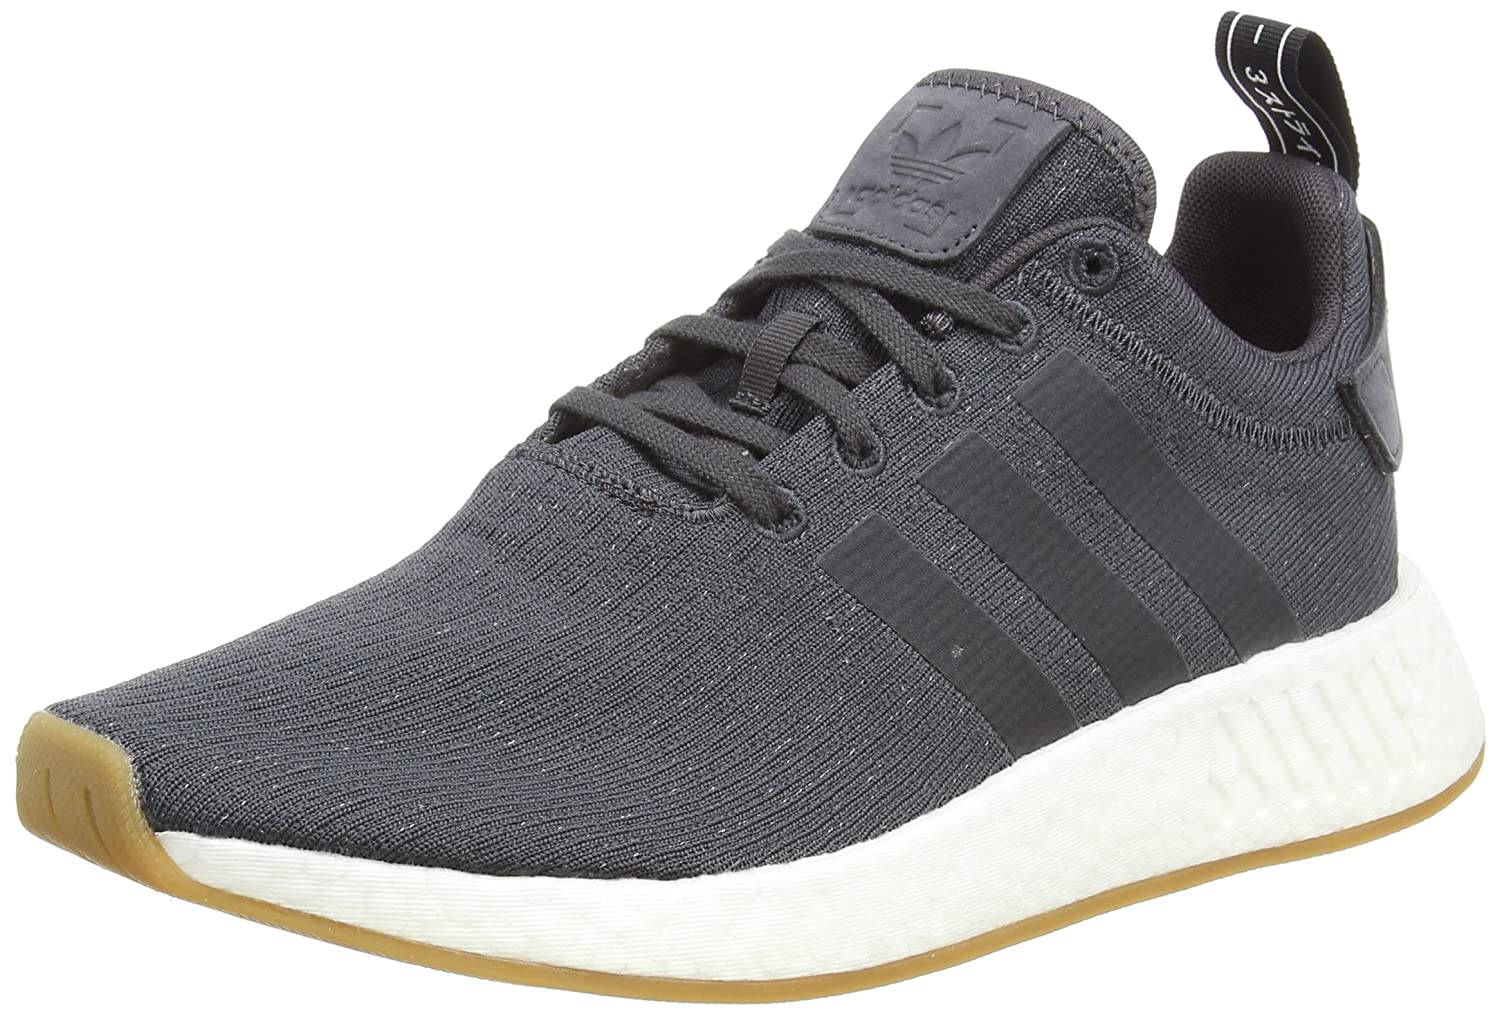 adidas Originals NMD_R2, Zapatillas Unisex Adulto, Gris (Grey F17/Grey Five F17/Core Black 000), 42 2/3 EU